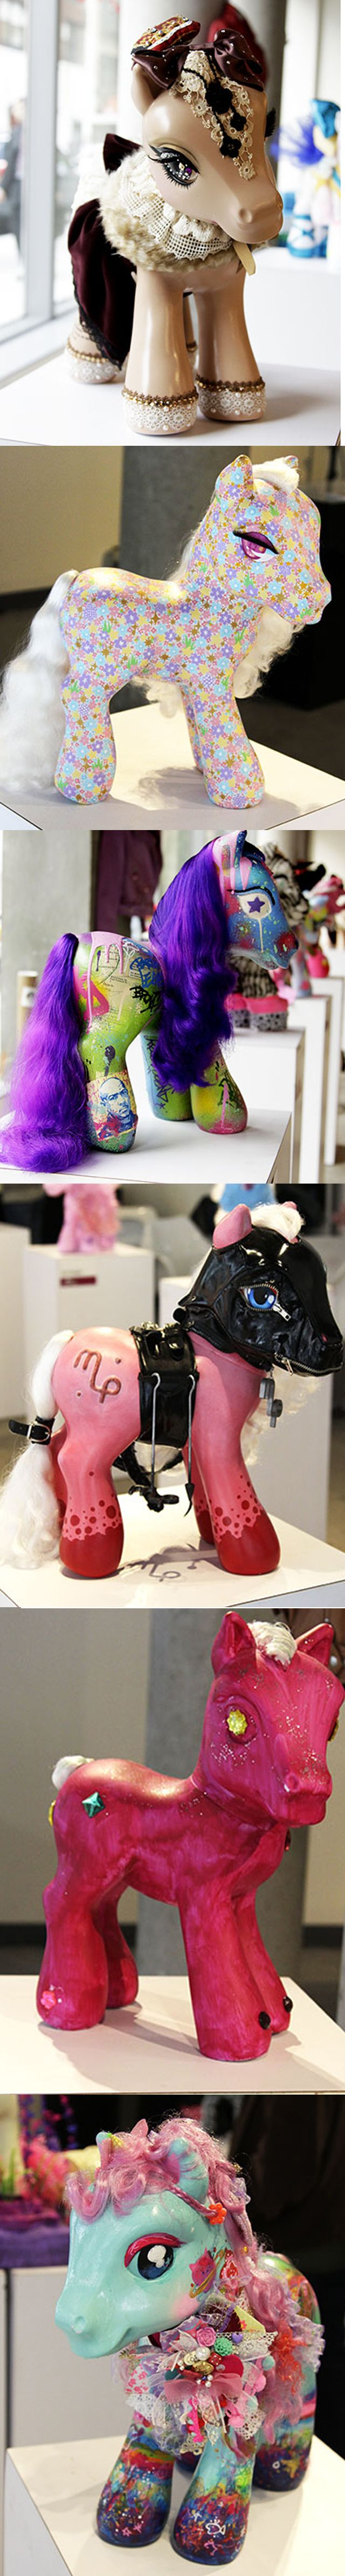 custom my little ponies on exhibition